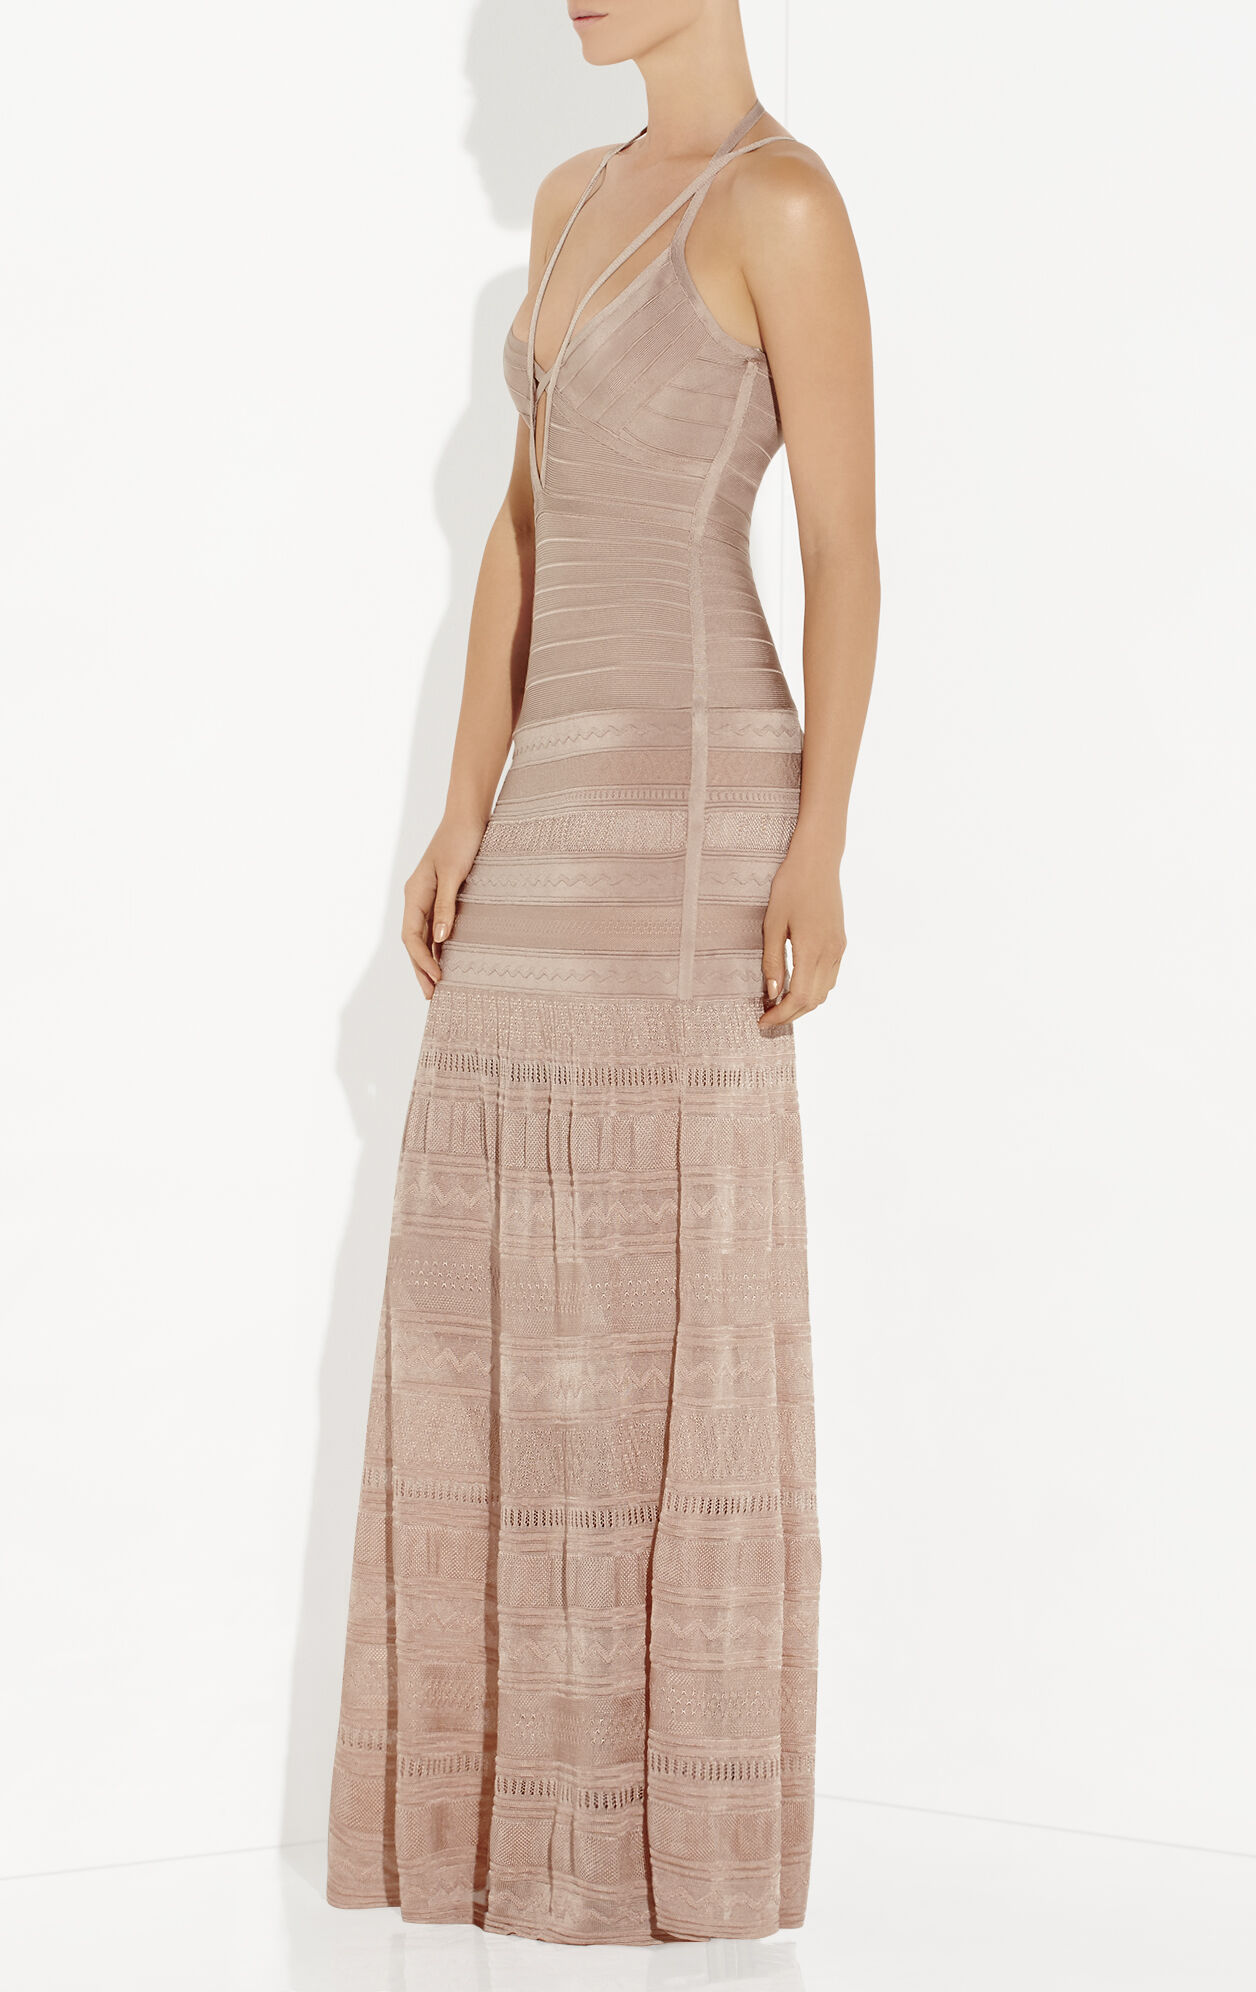 Vyvien Pointelle Bandage Gown